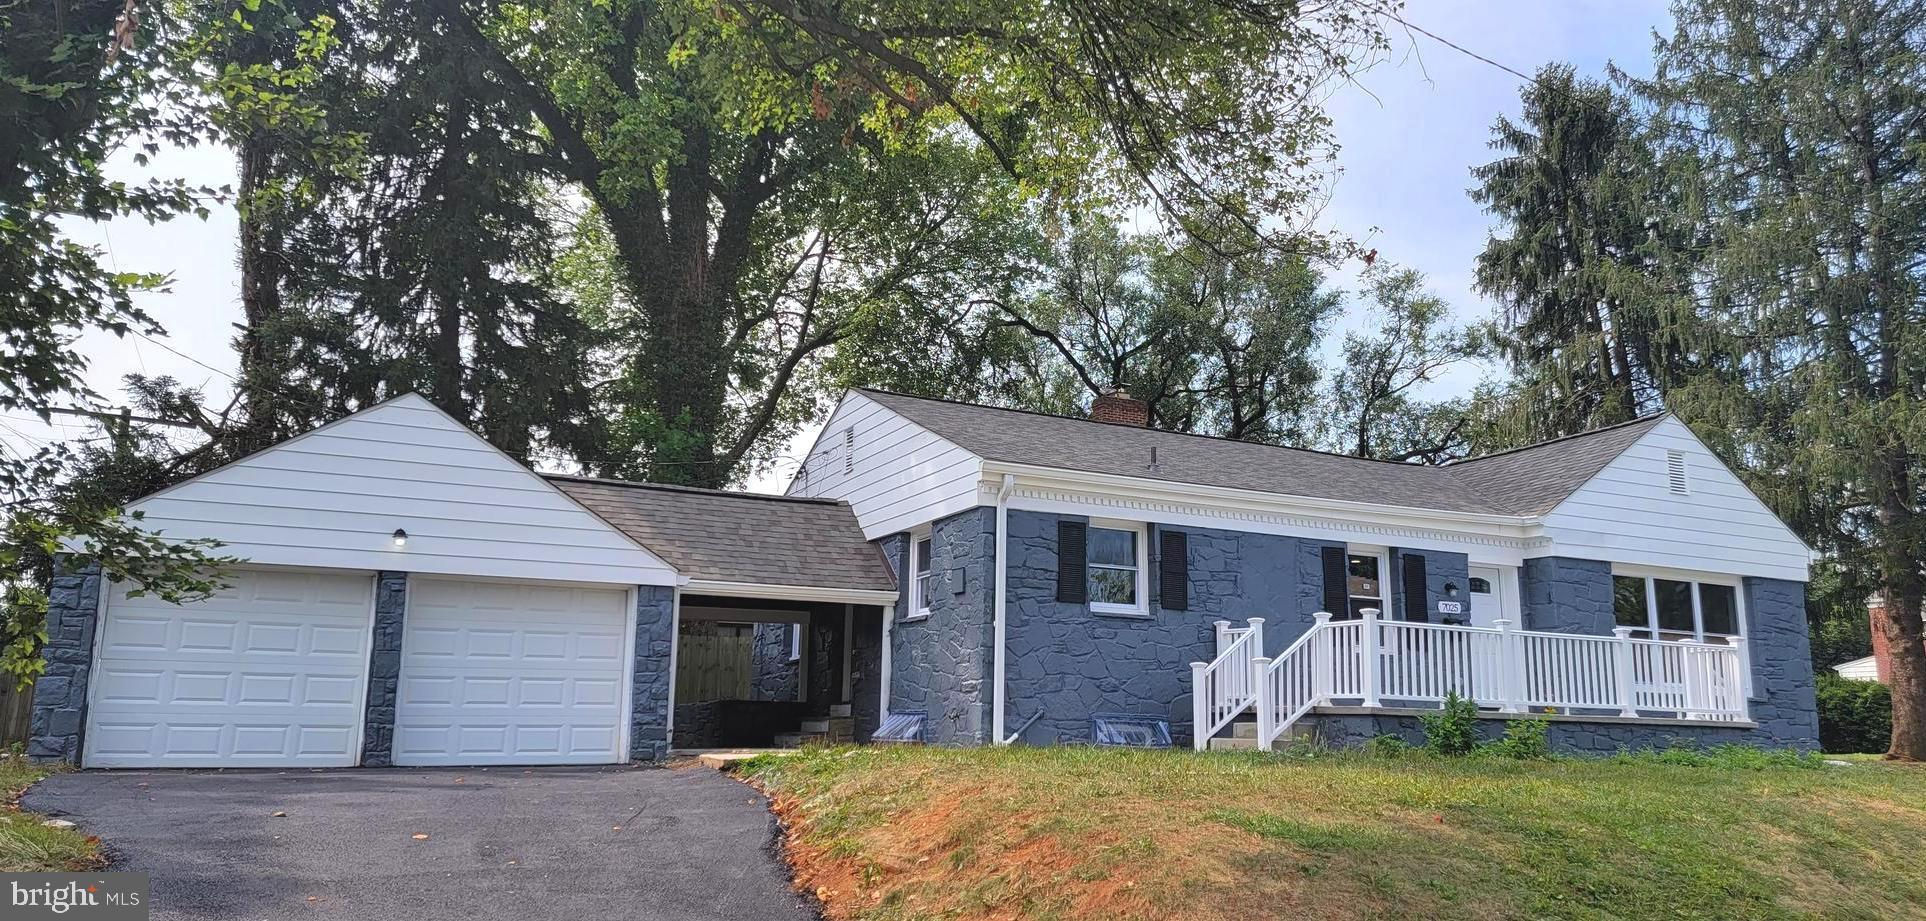 Another Property Sold - 7025 Deerfield Road, Baltimore, MD 21208